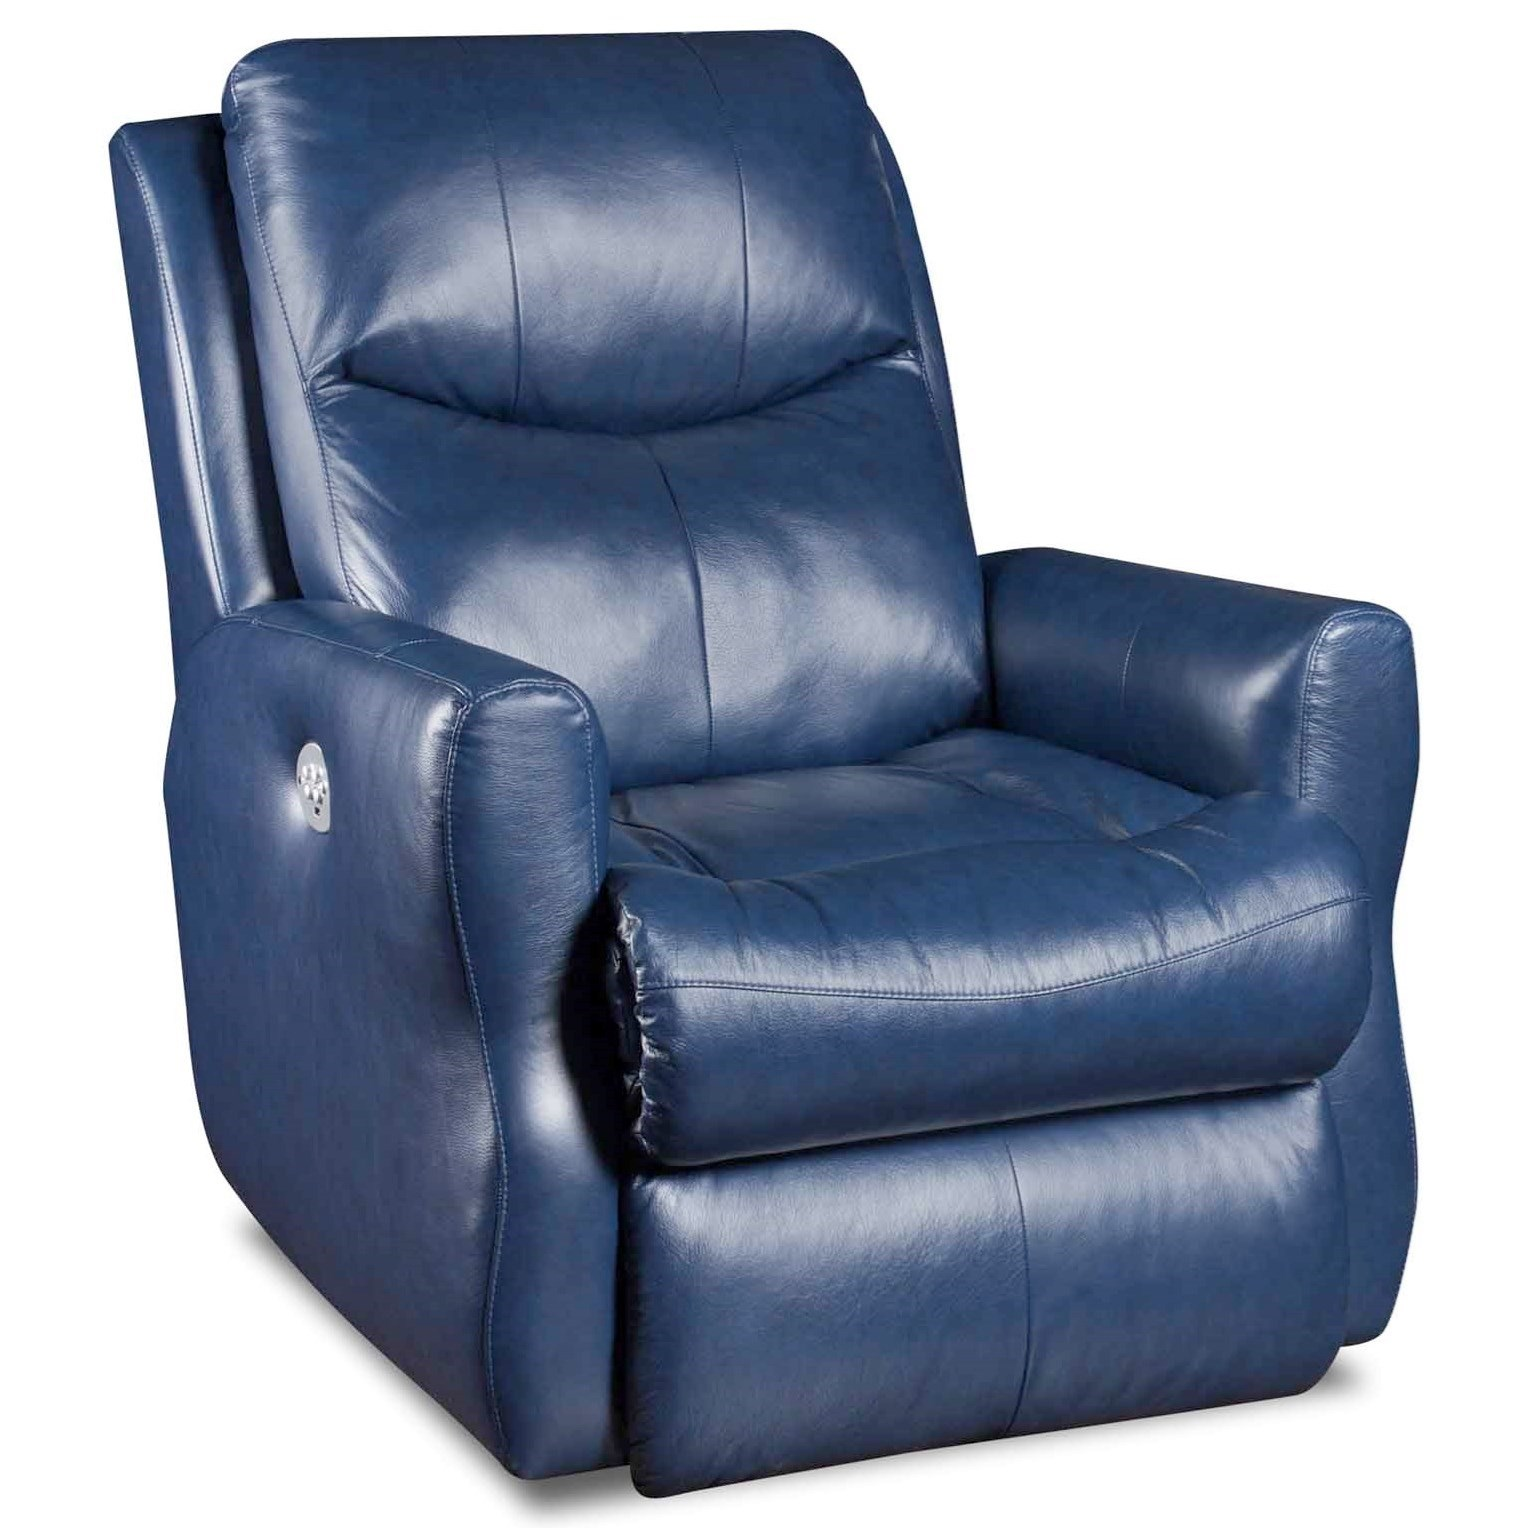 Southern Motion Recliners Fame Power Headrest Wall Hugger Recliner - Item Number 6007P-905  sc 1 st  Hudsonu0027s Furniture & Southern Motion Recliners Fame Power Headrest Wall Hugger Recliner ... islam-shia.org